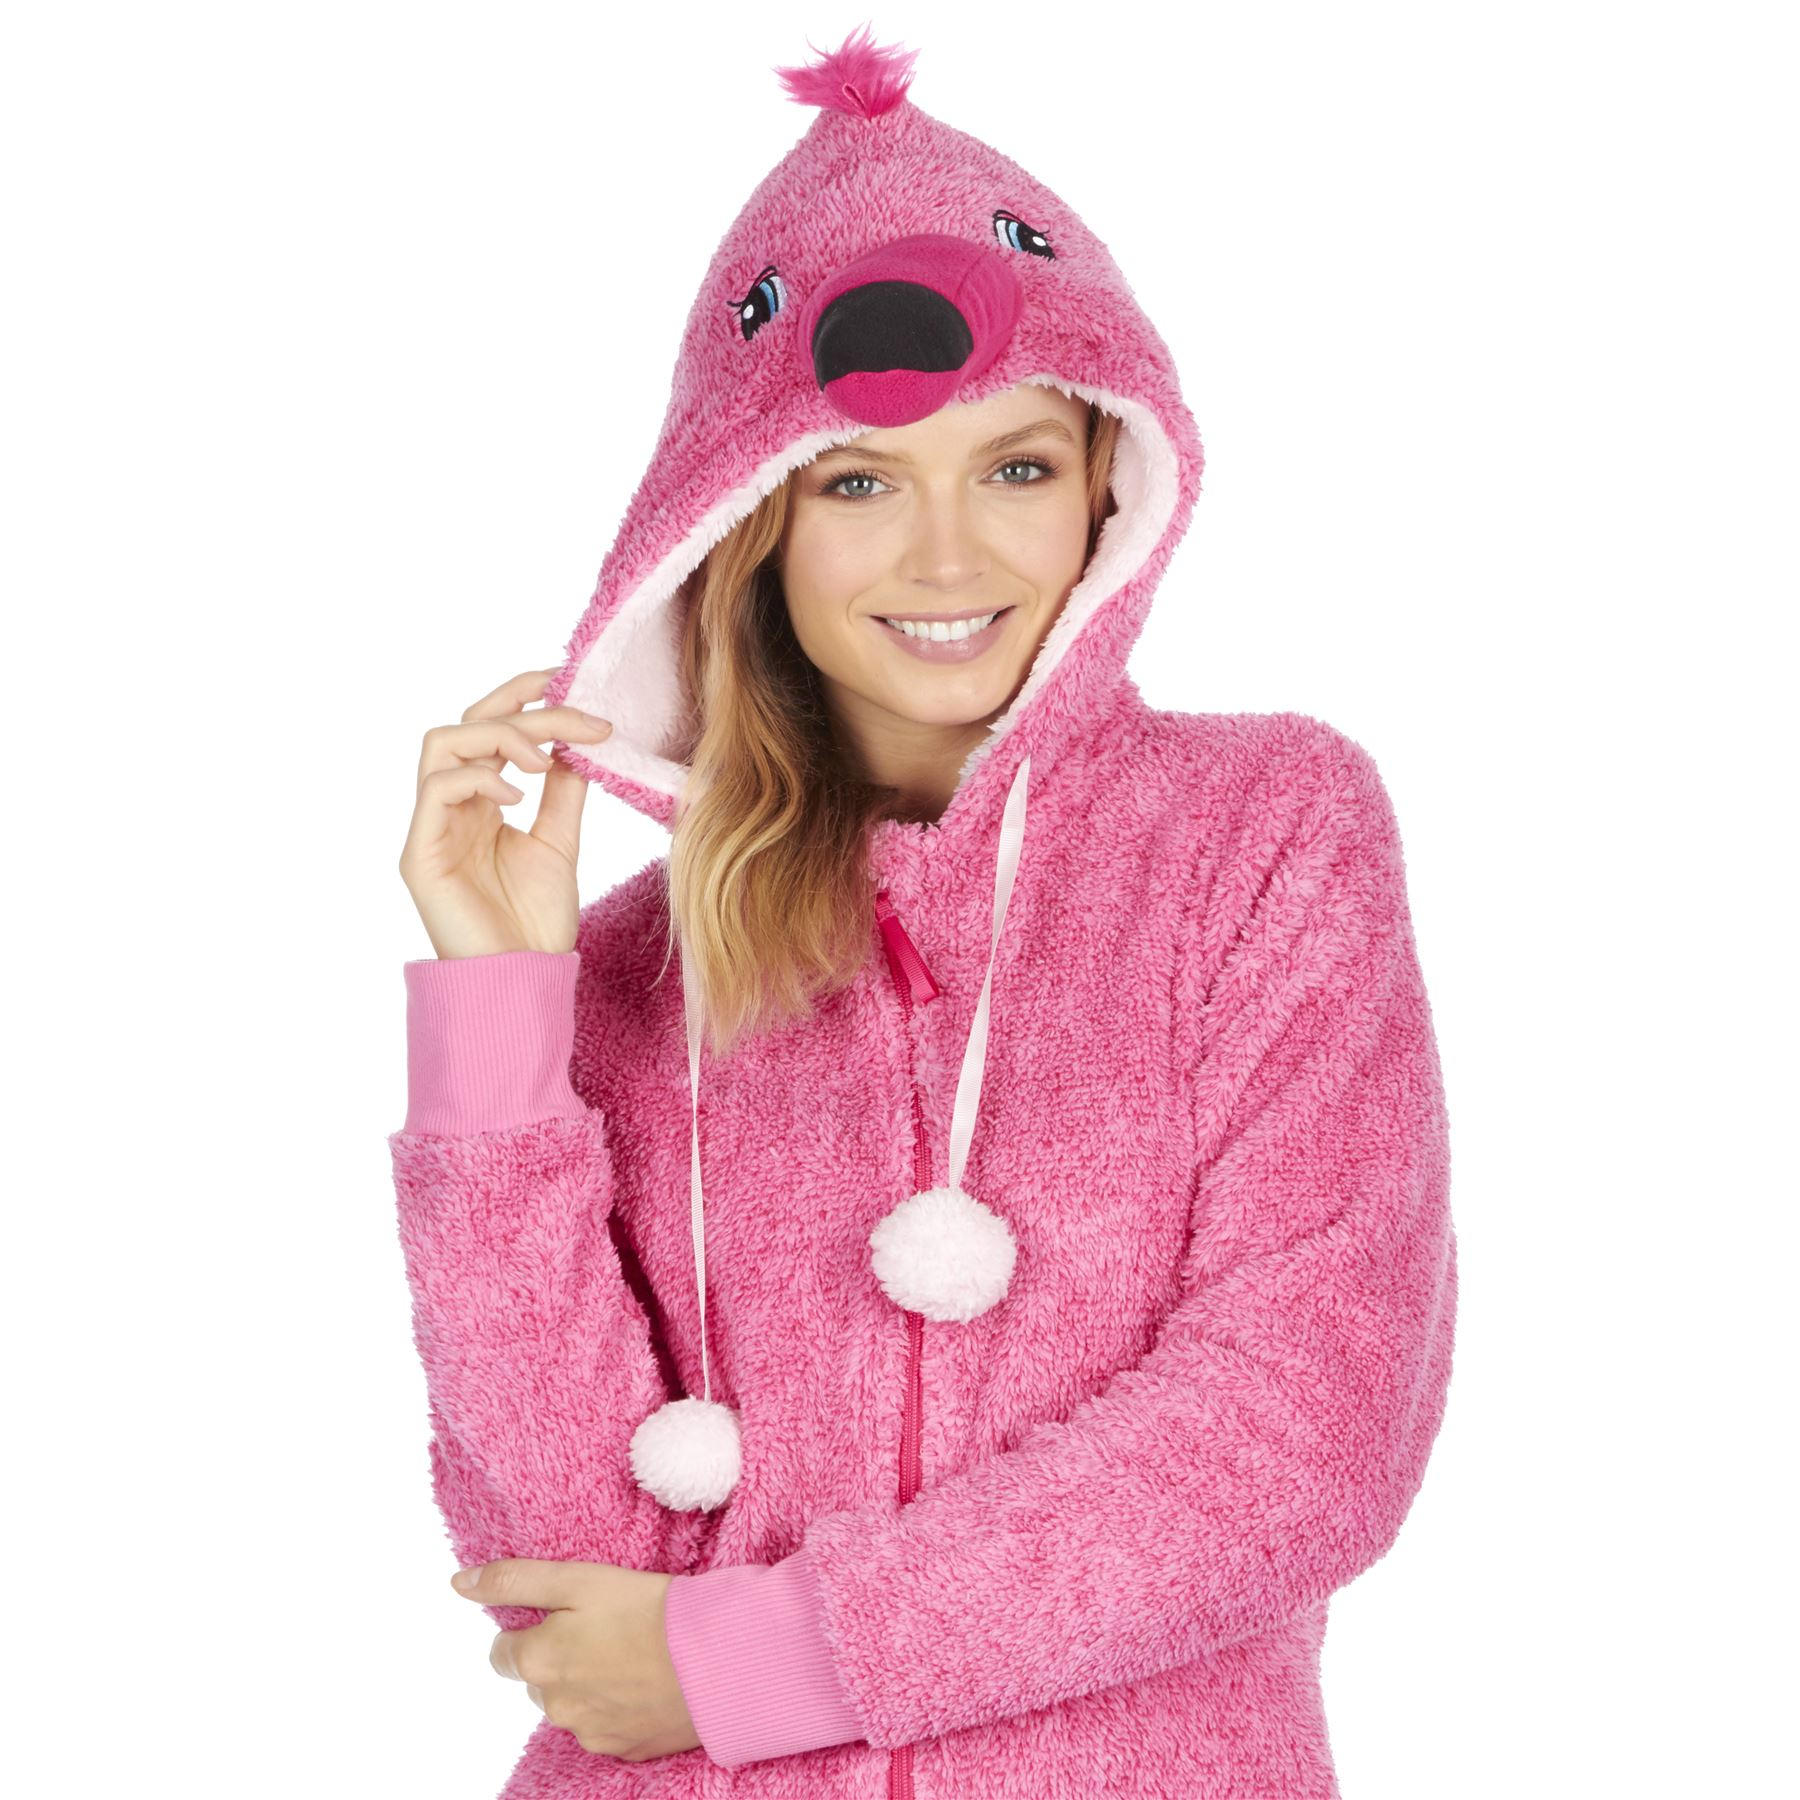 Ladies-Womens-Girls-Fleece-All-In-One-Pyjamas-Outfit-Jumpsuit-Costume-Size-6-18 thumbnail 3